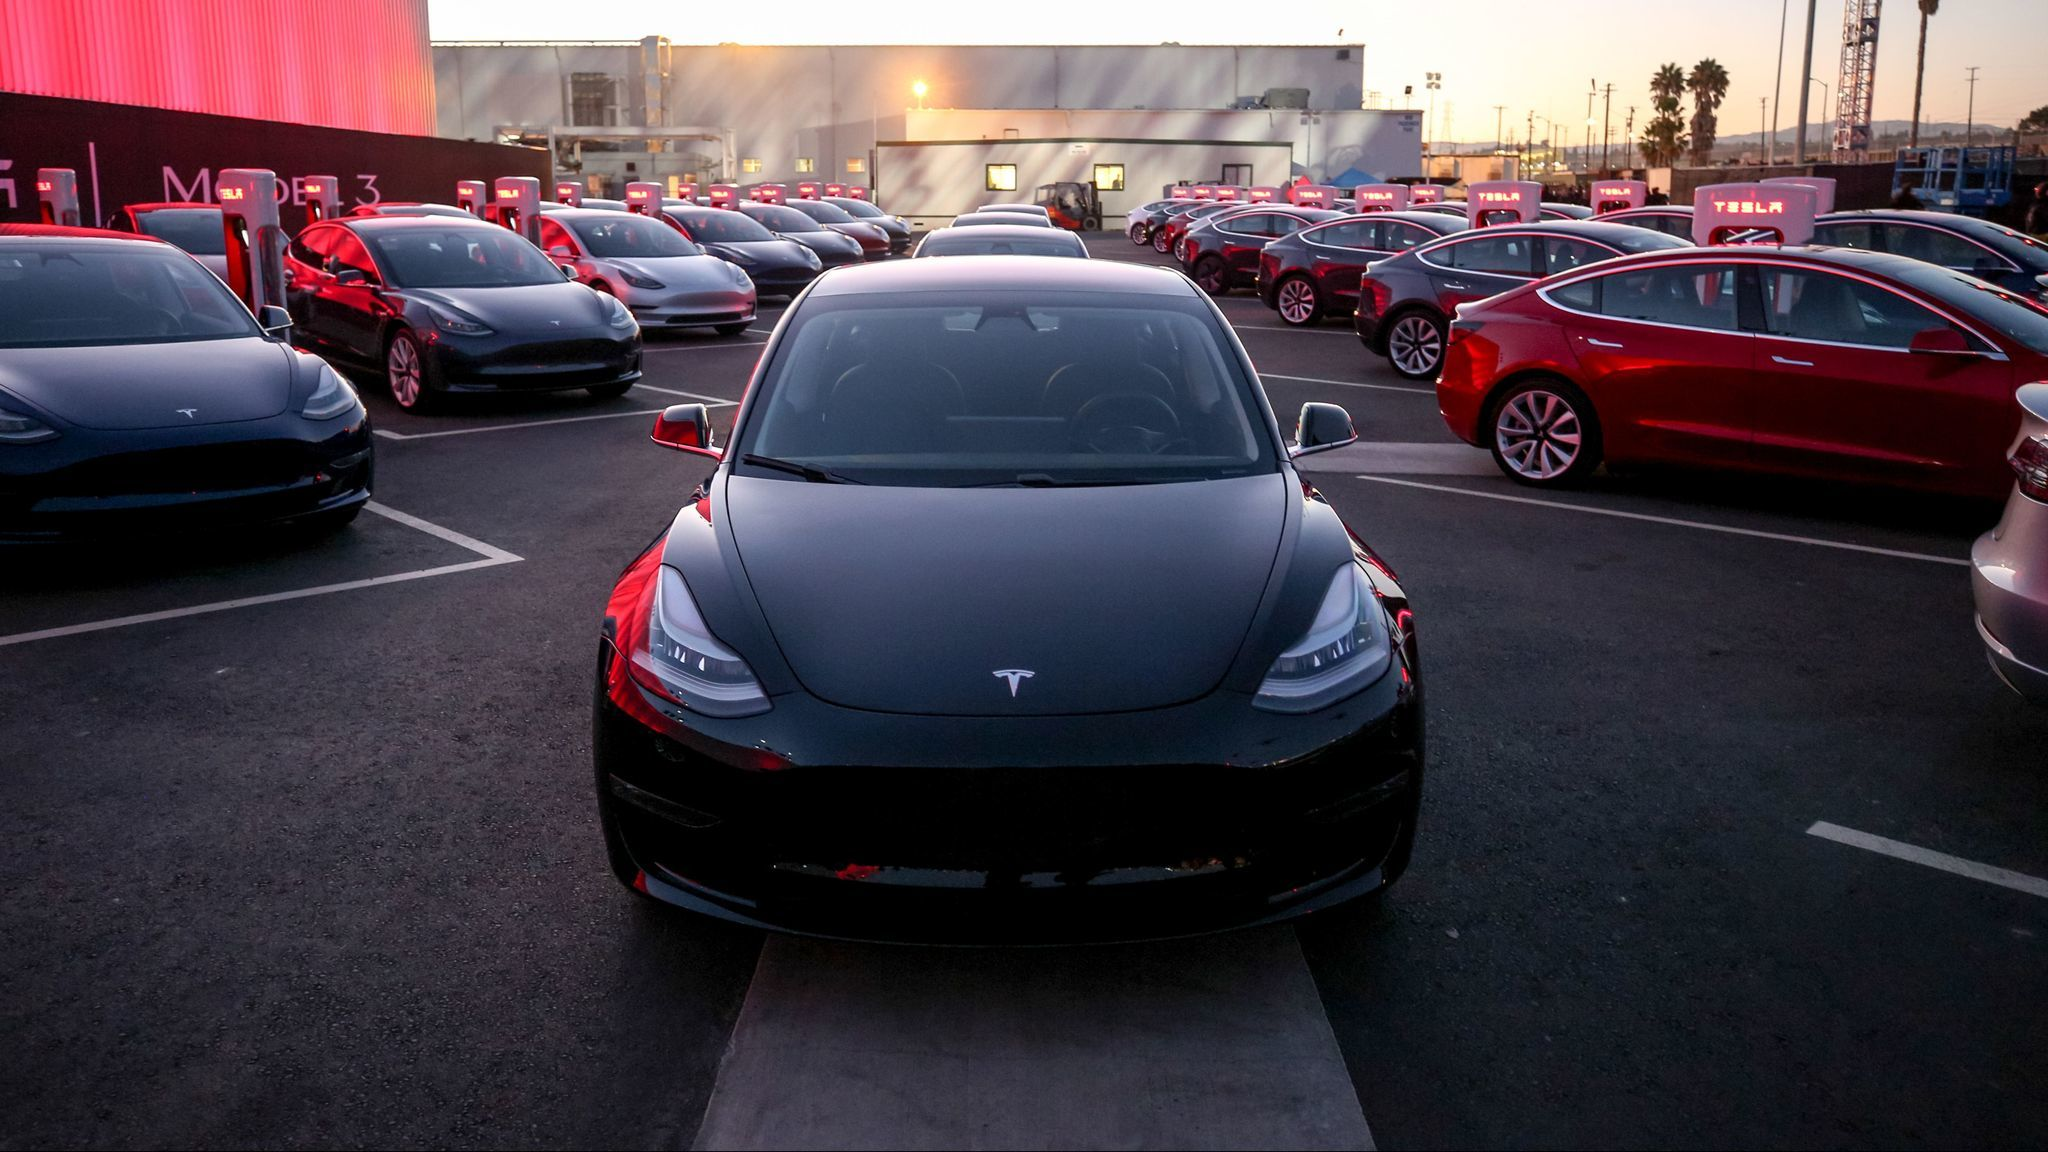 The $35,000 base price of Tesla's Model 3 car could drop by more than $16,000 if a more aggressive state rebate program proposed by a San Francisco assemblyman is adopted.